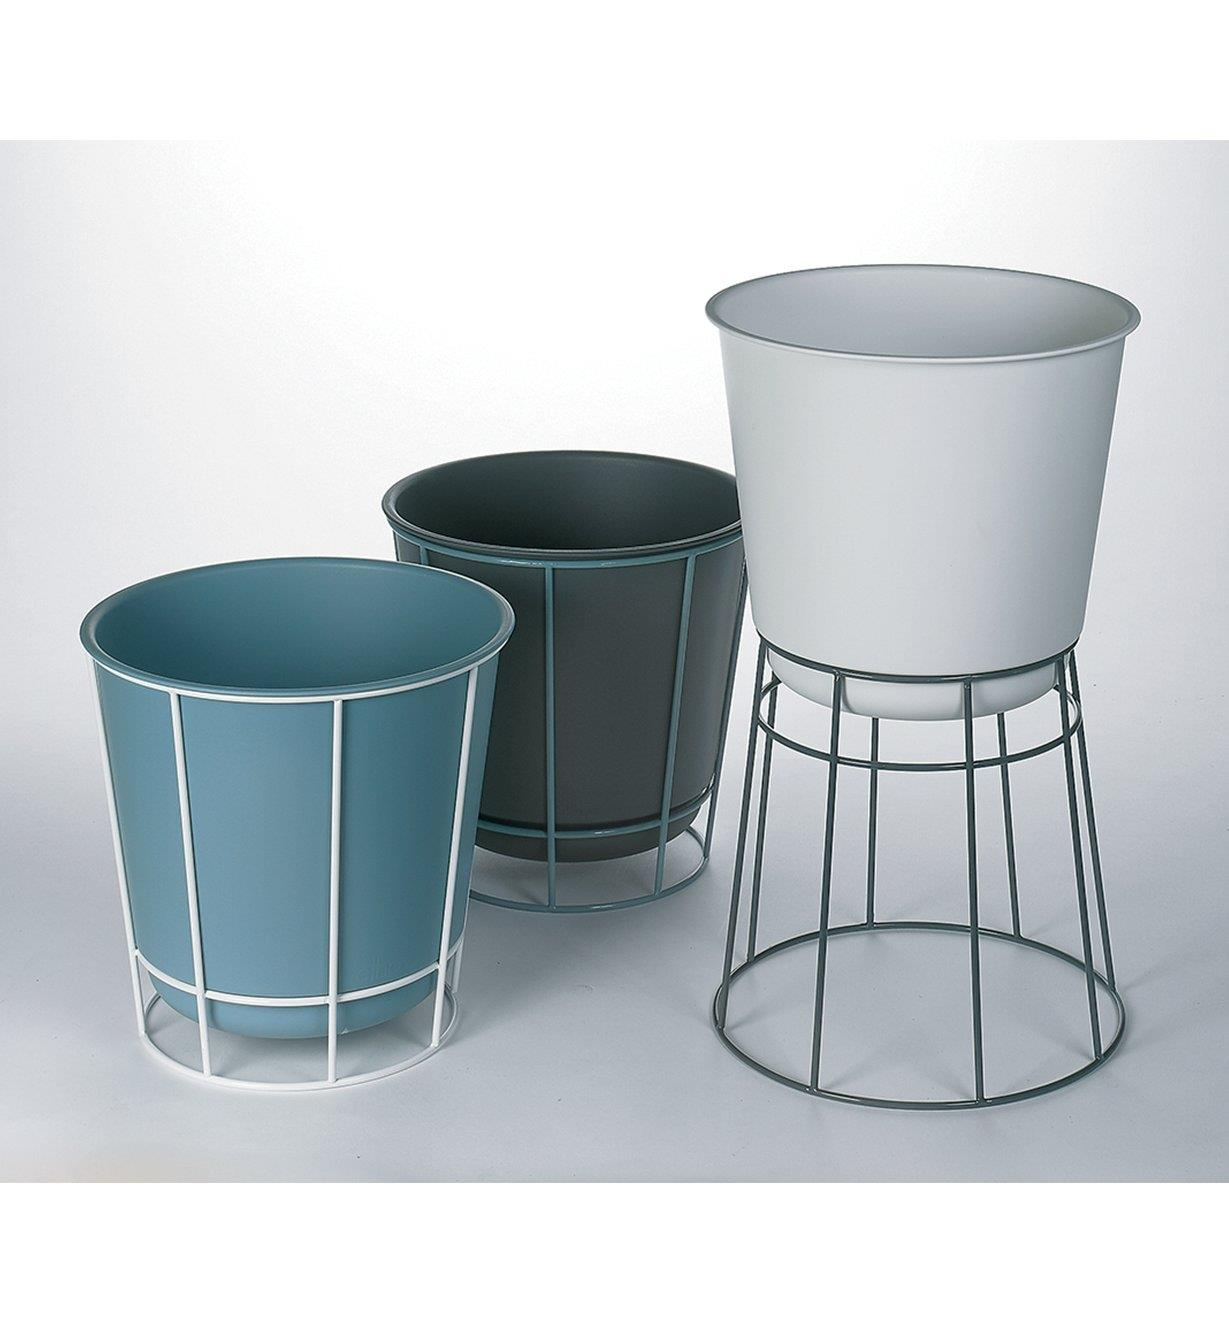 XB740 - Elho Planter & Stand Set